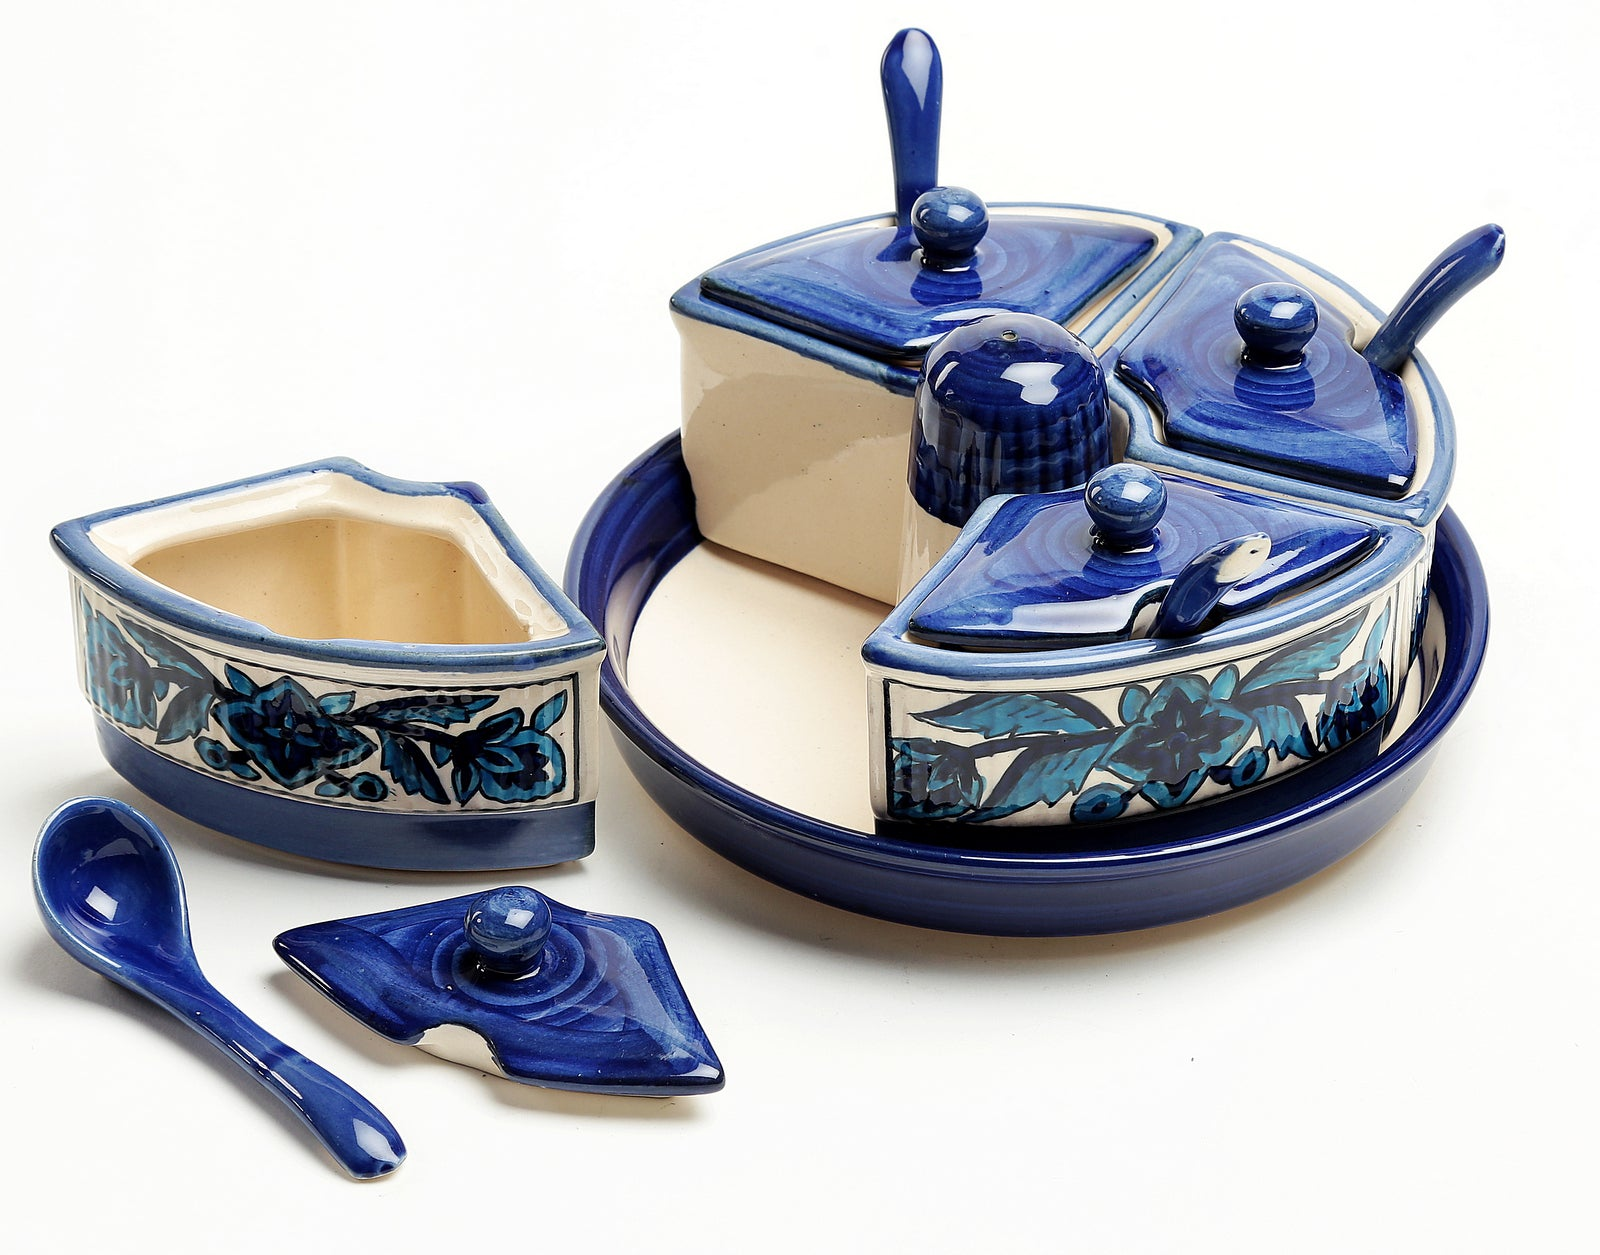 Moroccan  Pickle Set - Set of 4 jars and a salt dispenser